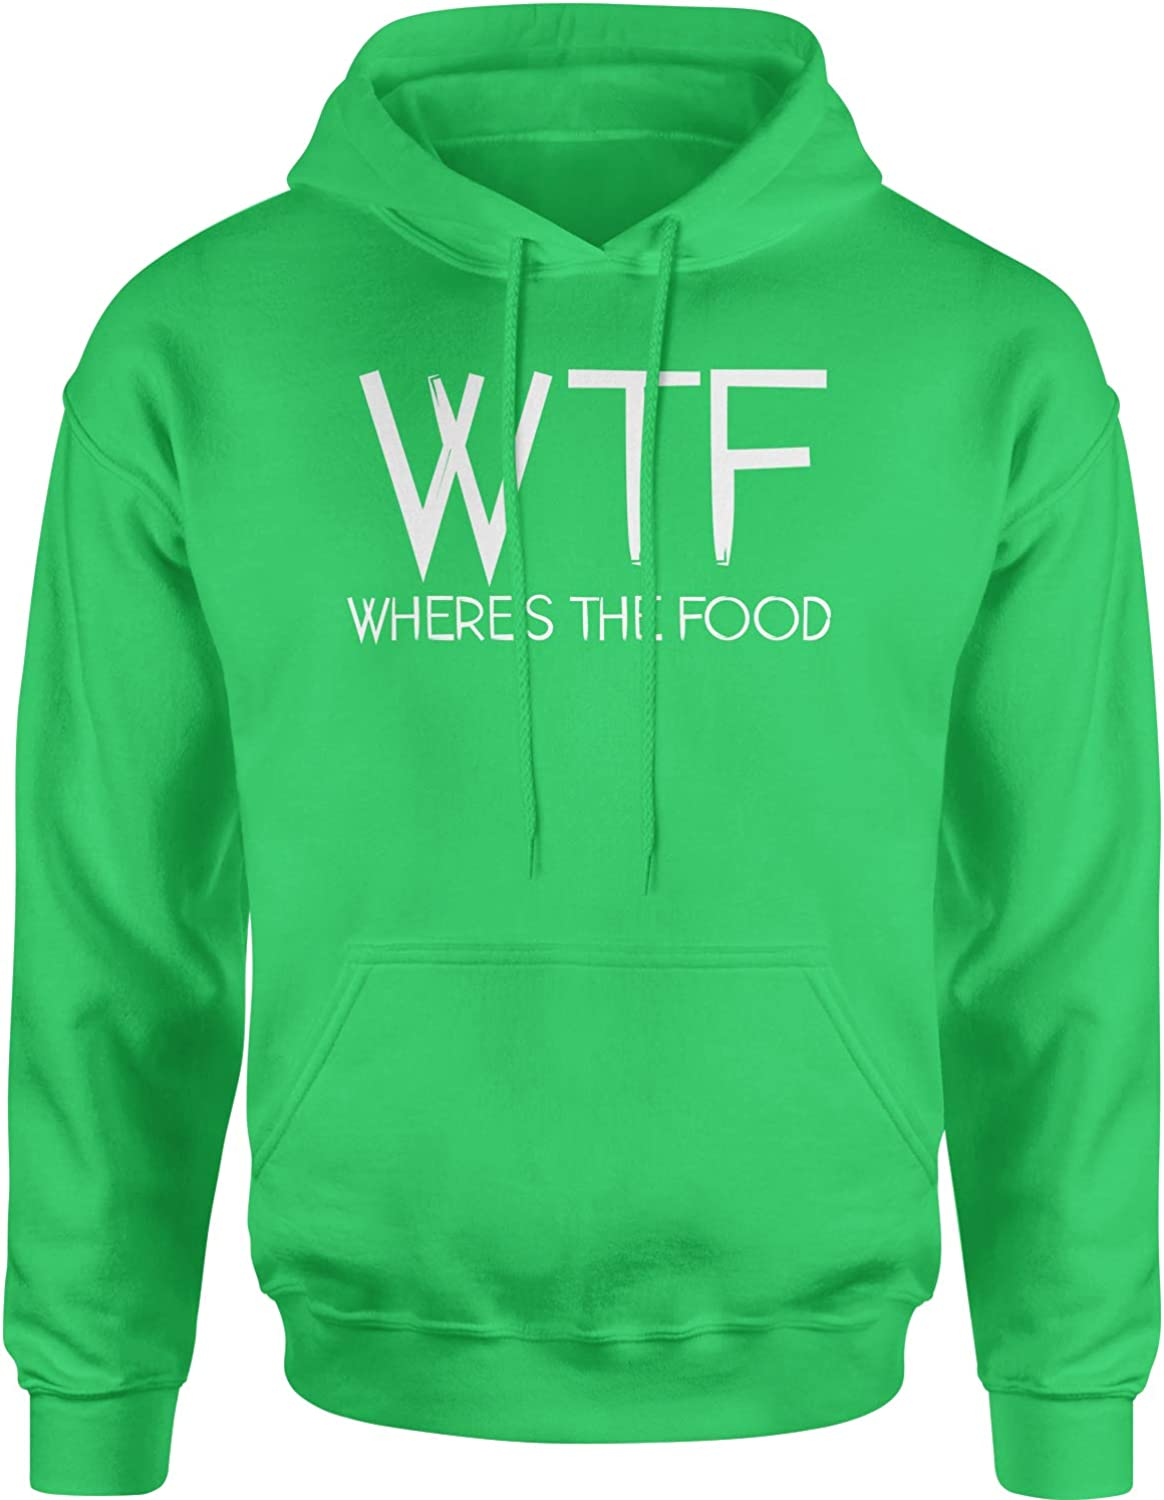 Expression Tees WTF Where's The Food Unisex Adult Hoodie